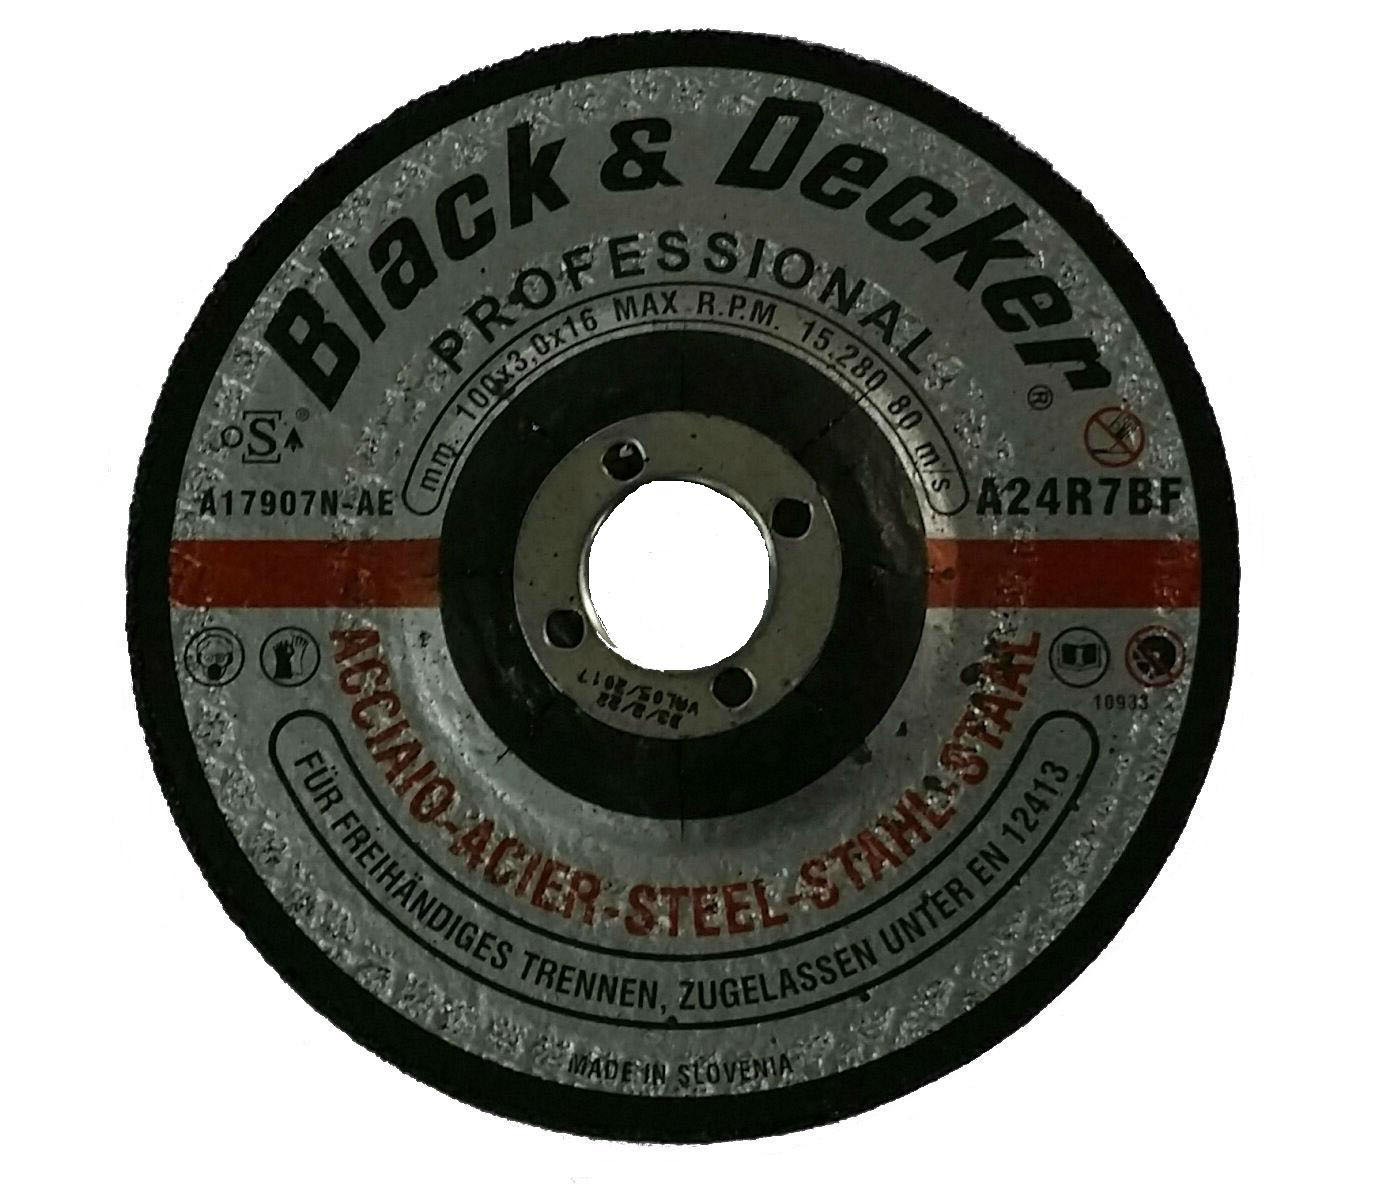 Black & Decker A17927N-AE - 4.5in Metal Cutting Disc